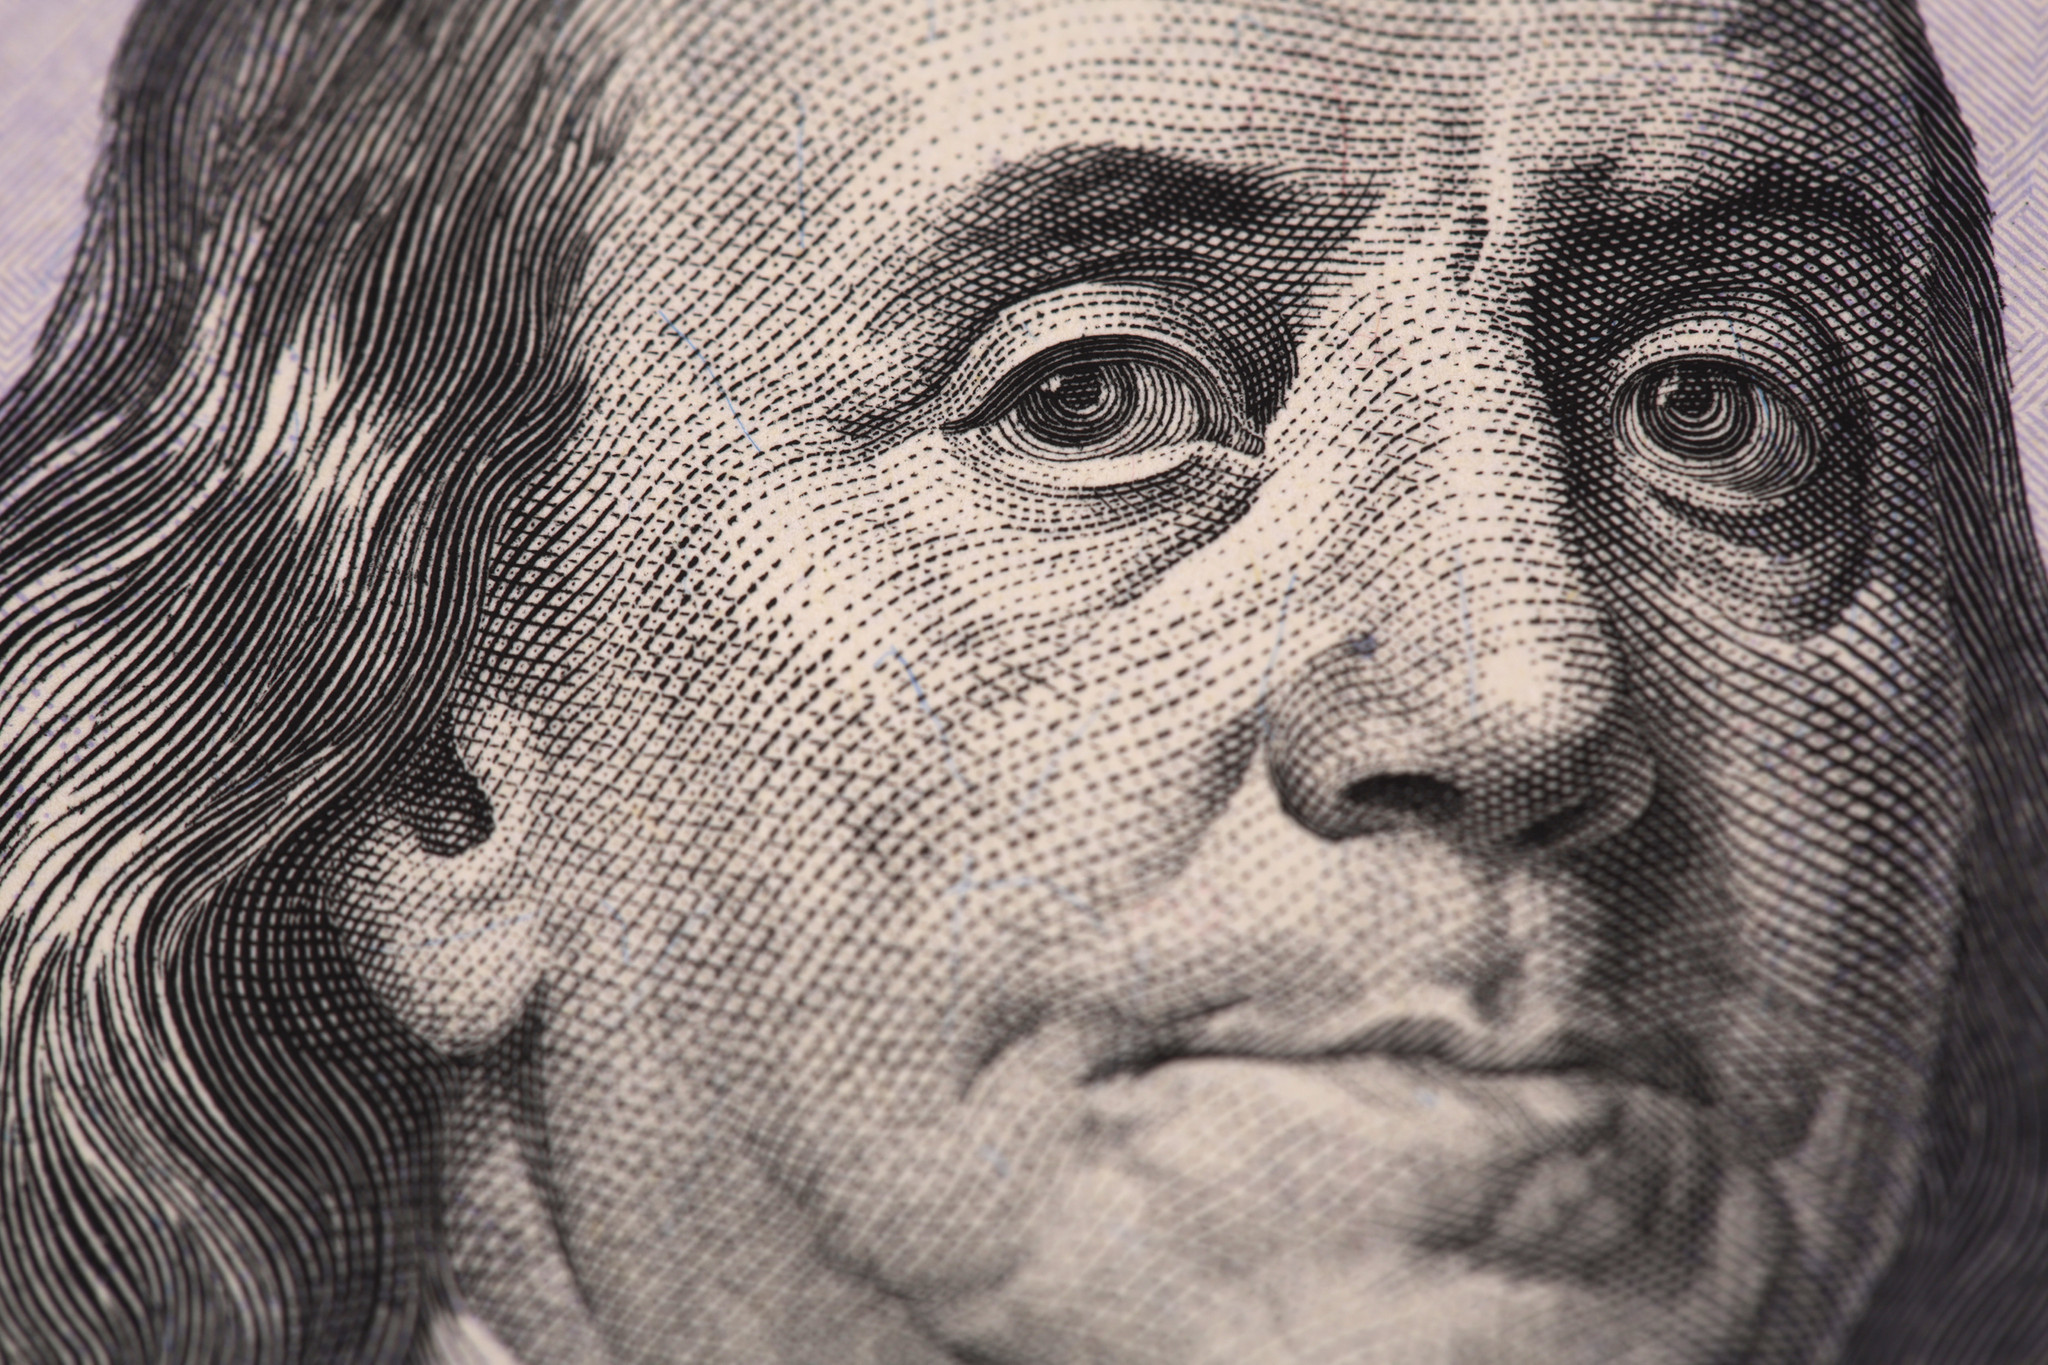 Analysis: Money can buy happiness - if you know how to use it